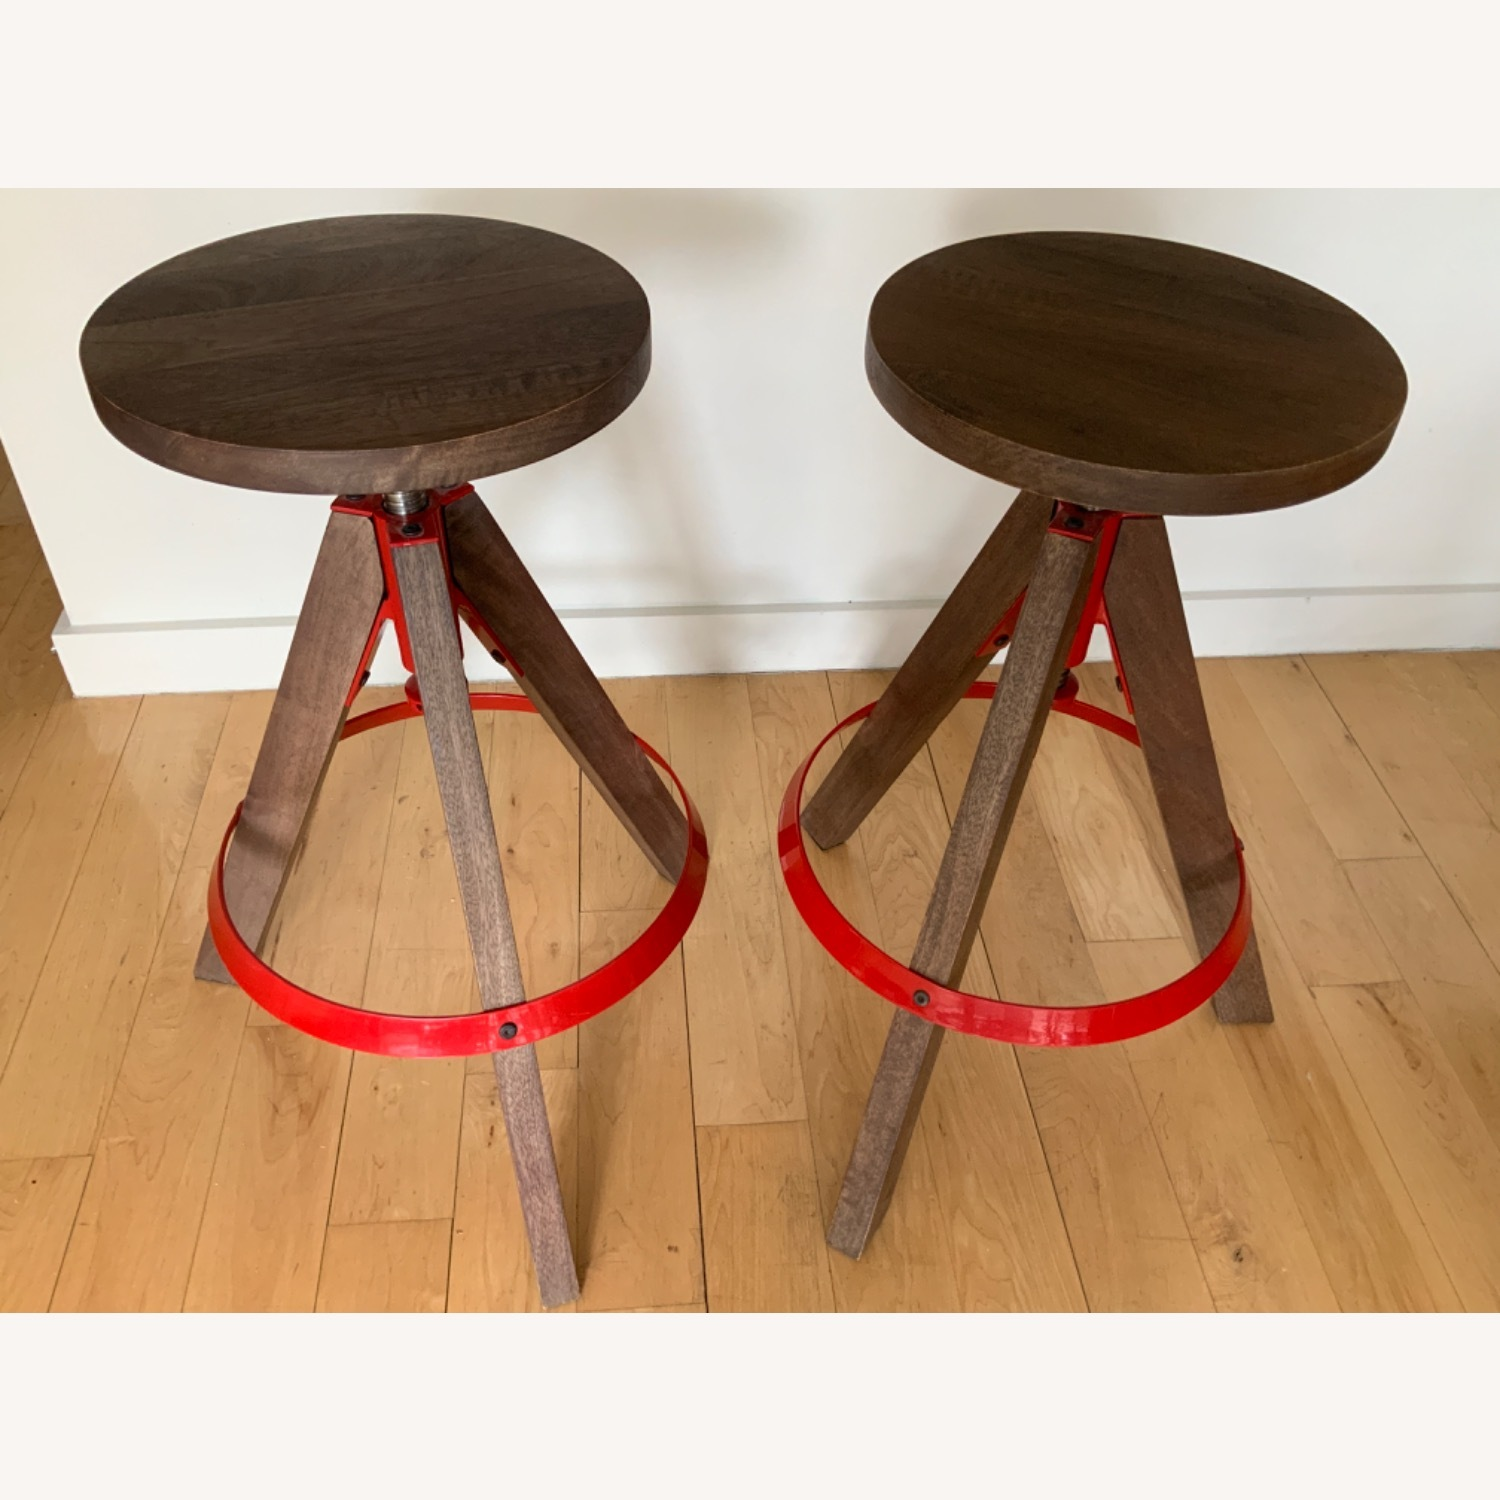 CB2 Height Adjustable Counter Stools - image-1